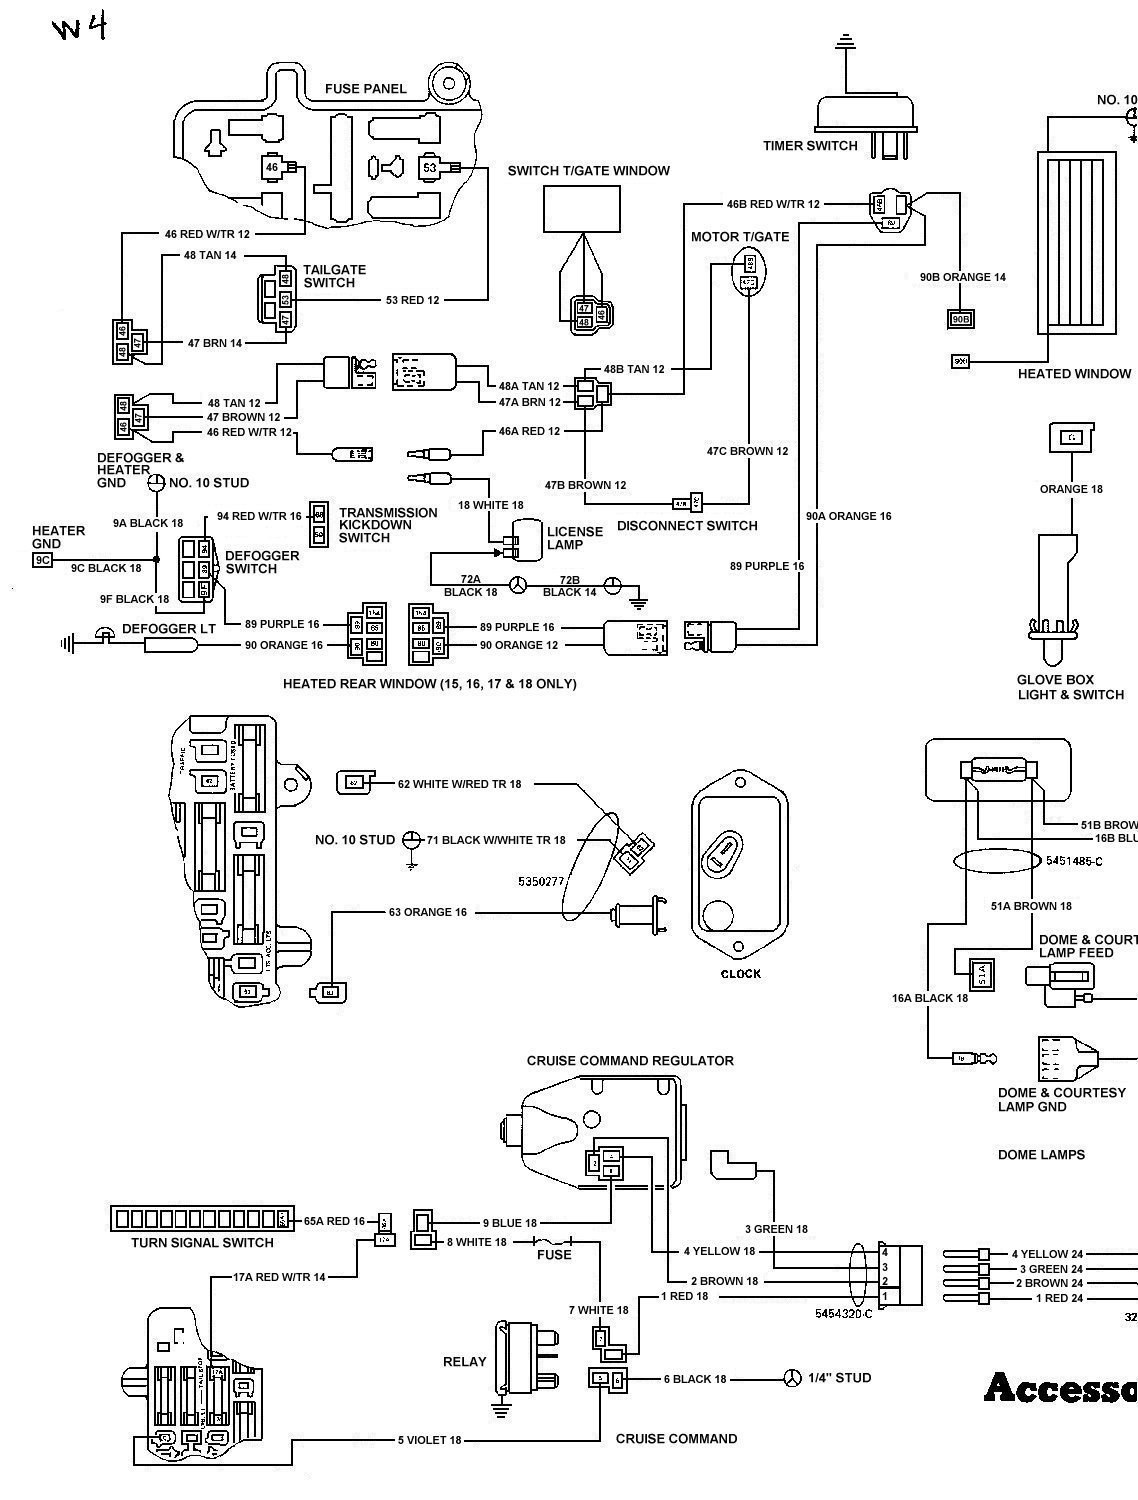 Wiring Diagram Further Amc 6 Cylinder Engines Also On Diagrams Of 1964 Rambler American Part 2 Cj7 258 Library